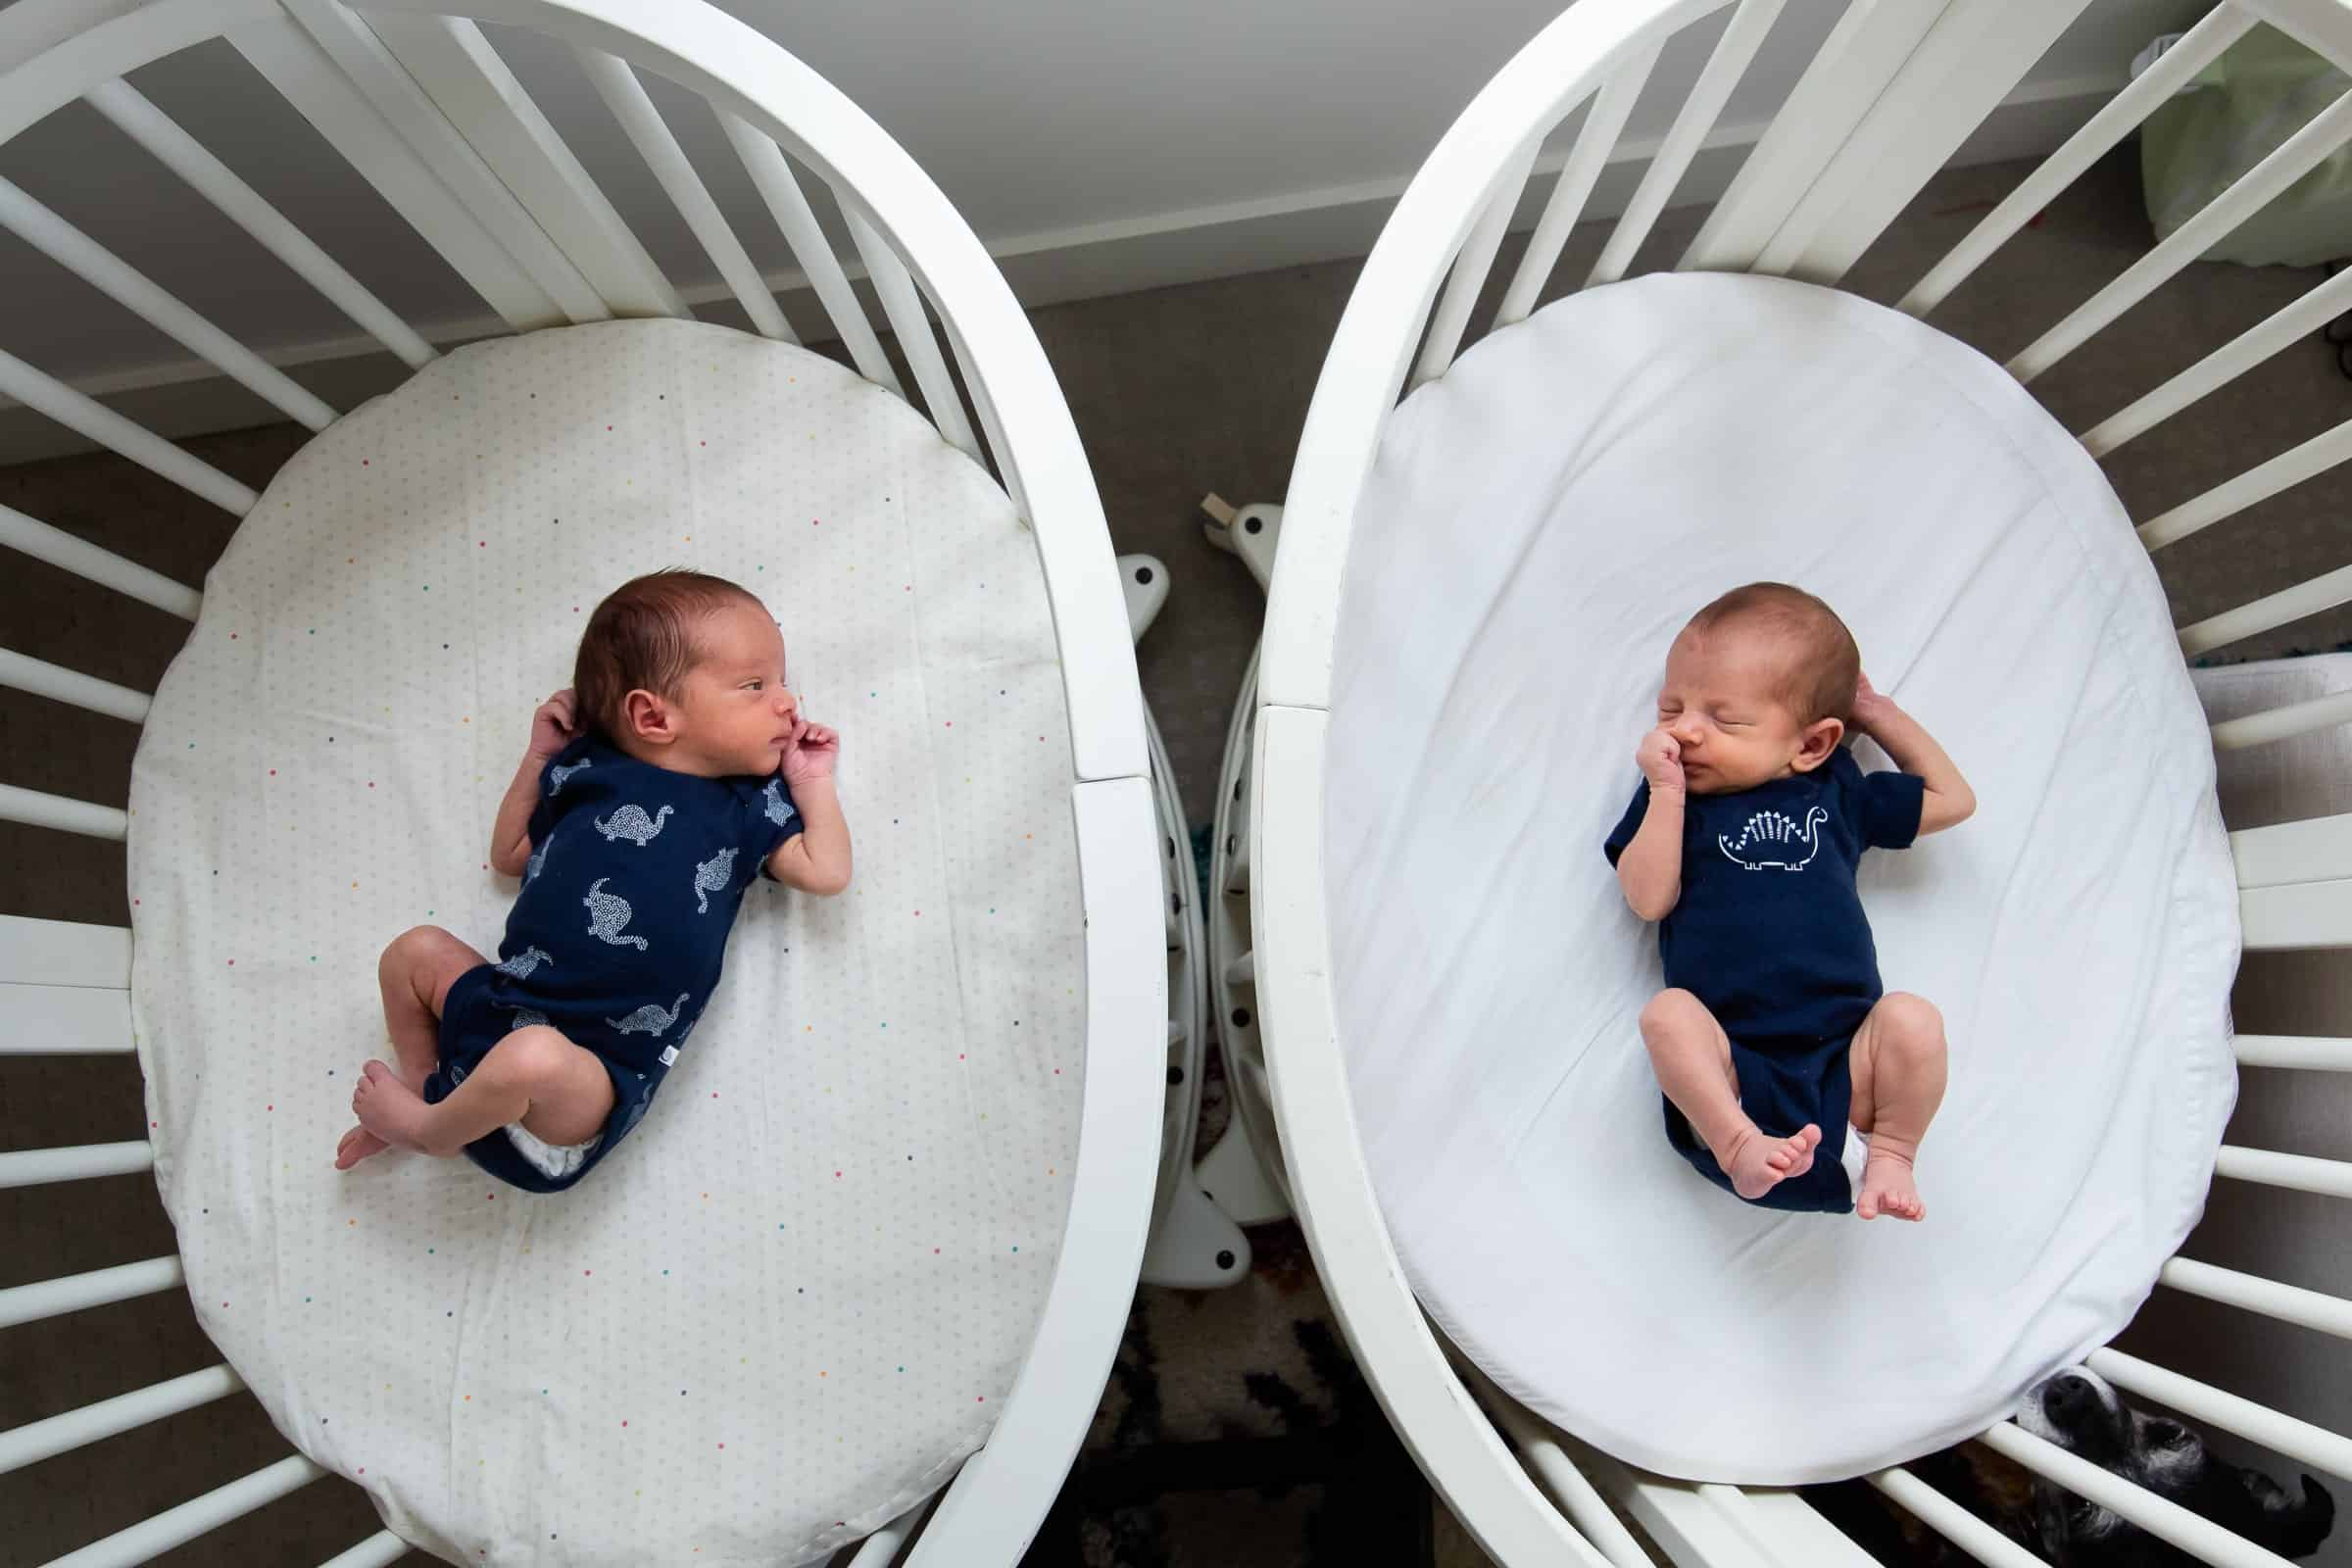 newborn twins in cribs side by side from above